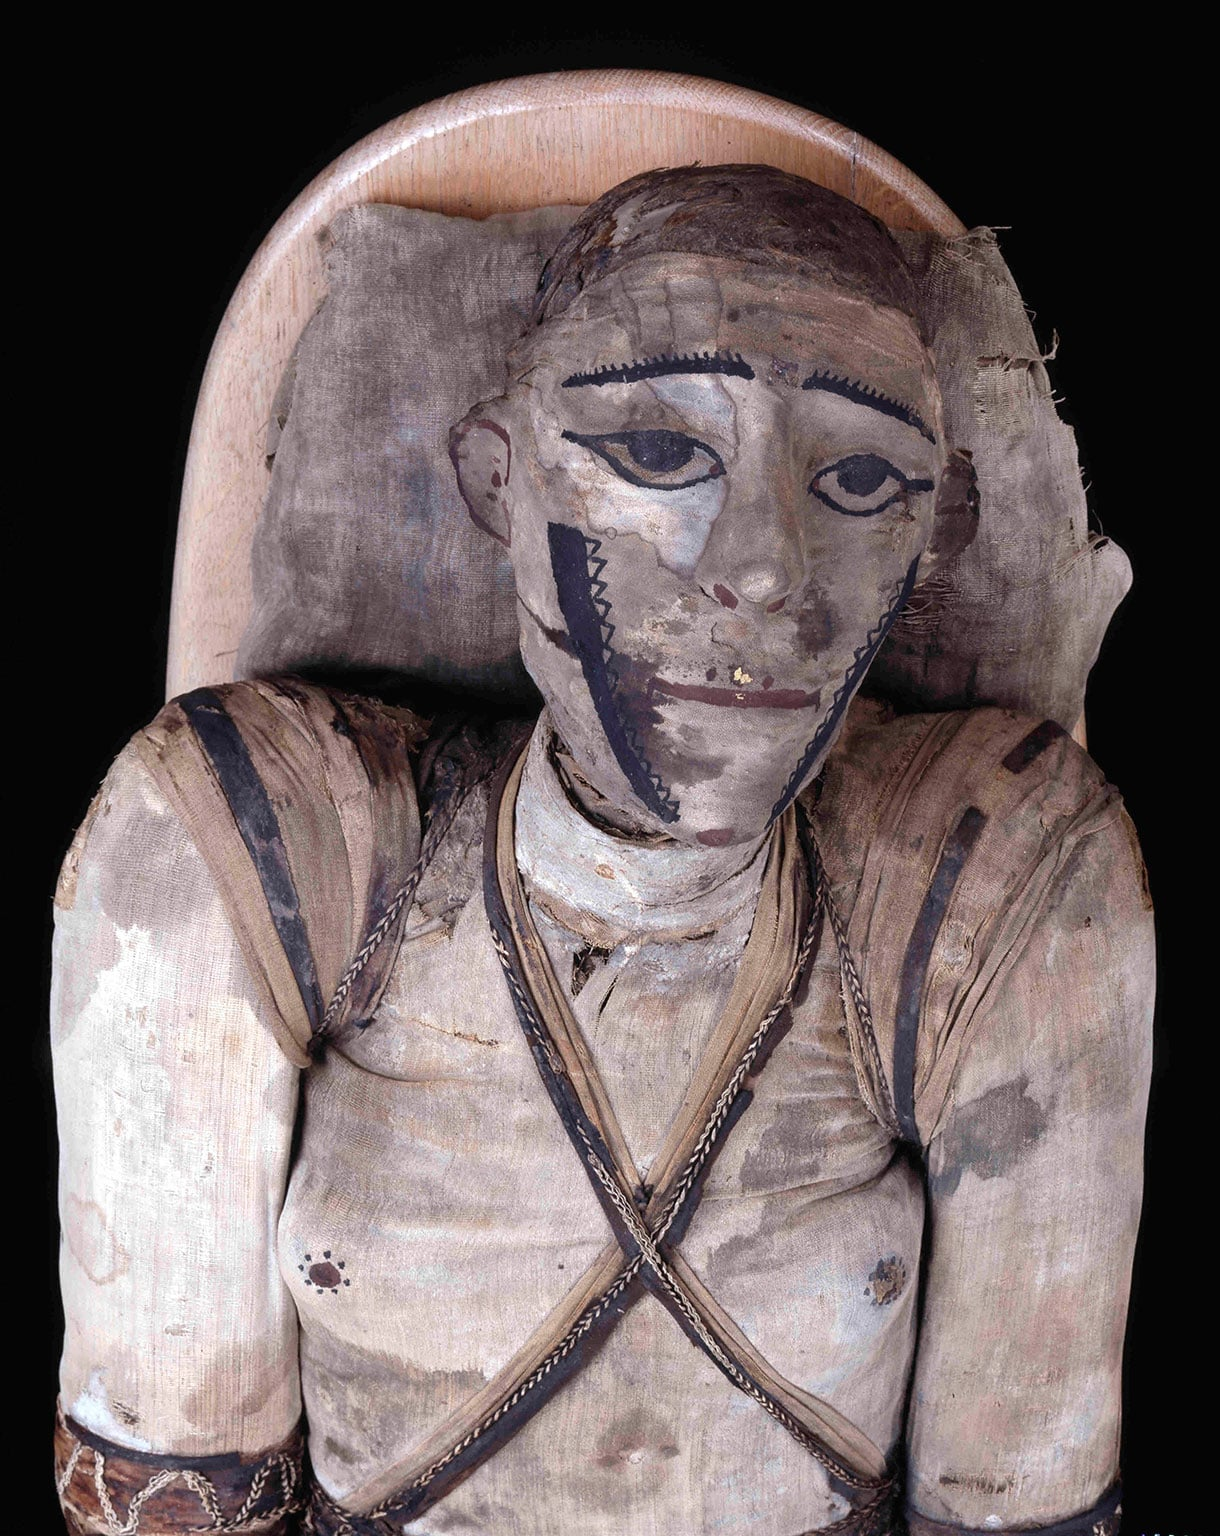 Mummy of an adult man, name unknown. Roman period